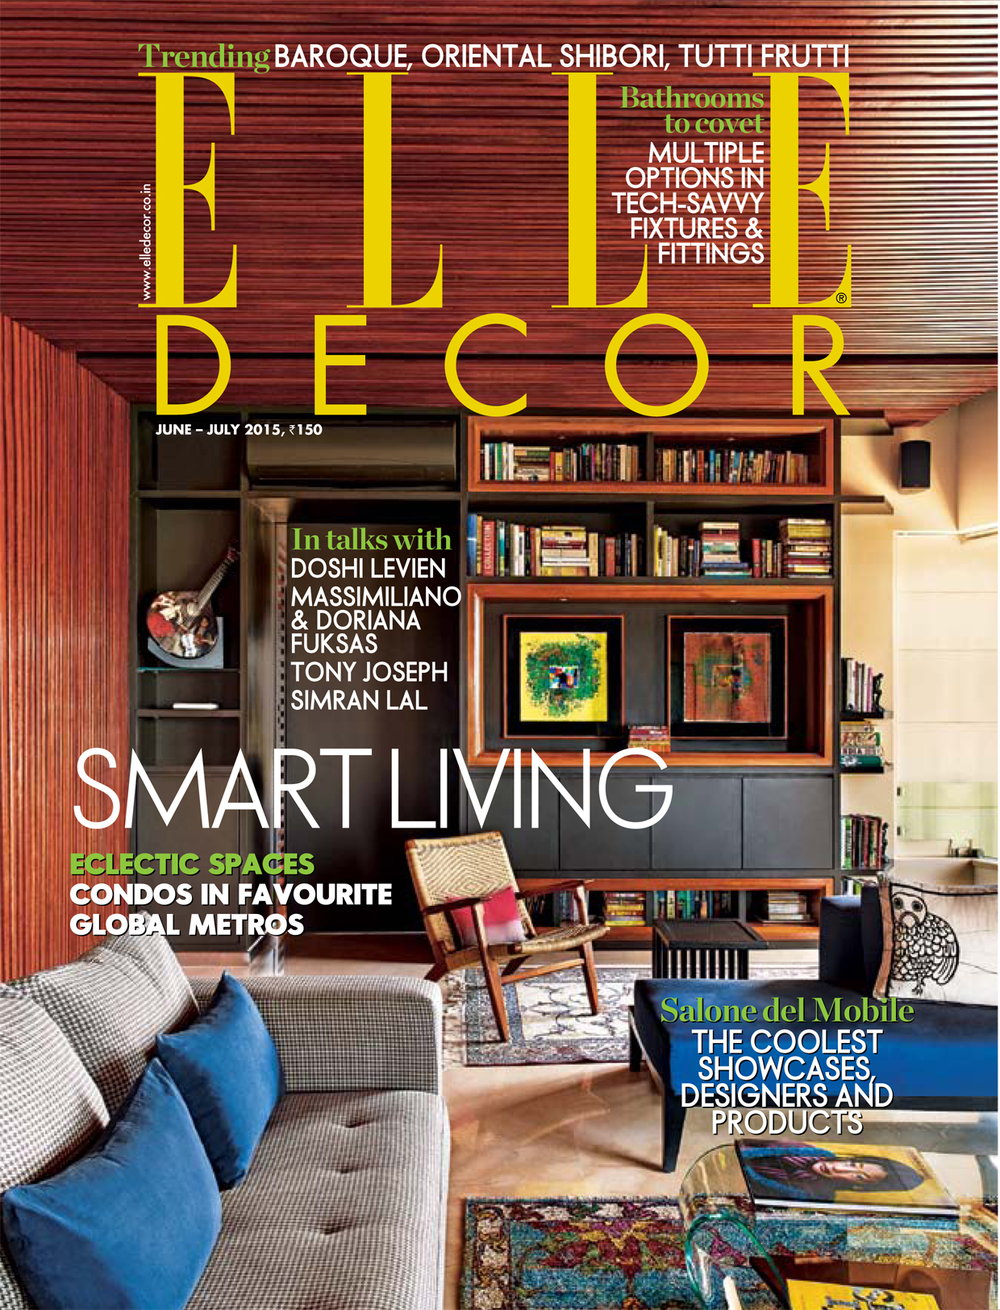 © ghislaine viñas interior design-elle-decor_cover_6-7-2015.jpg